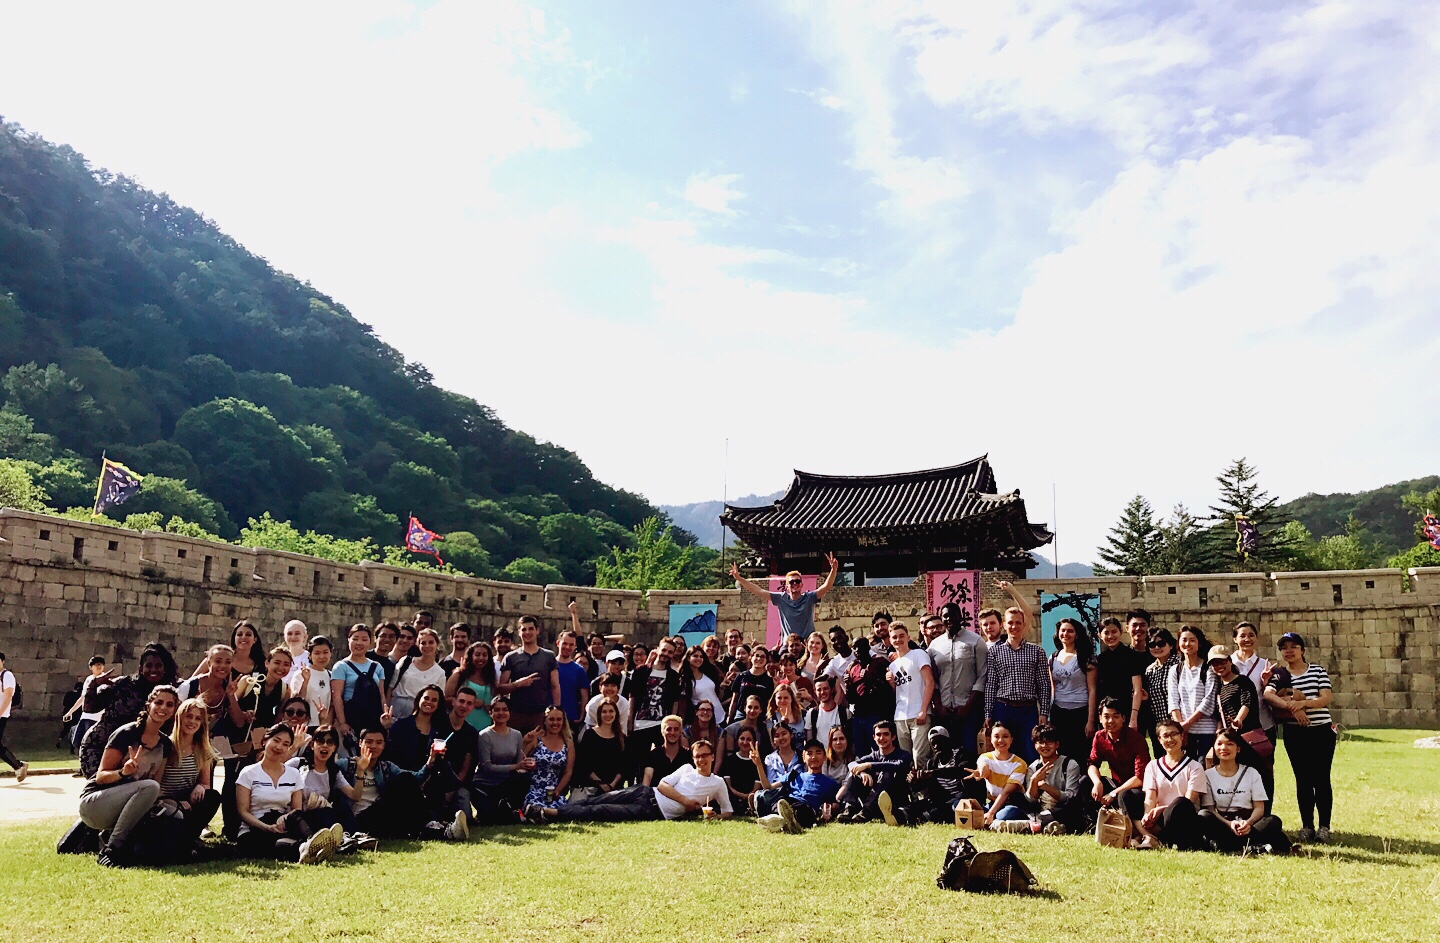 International Exchange/Double Degree Students Myungyeong Trip 관련 이미지입니다.